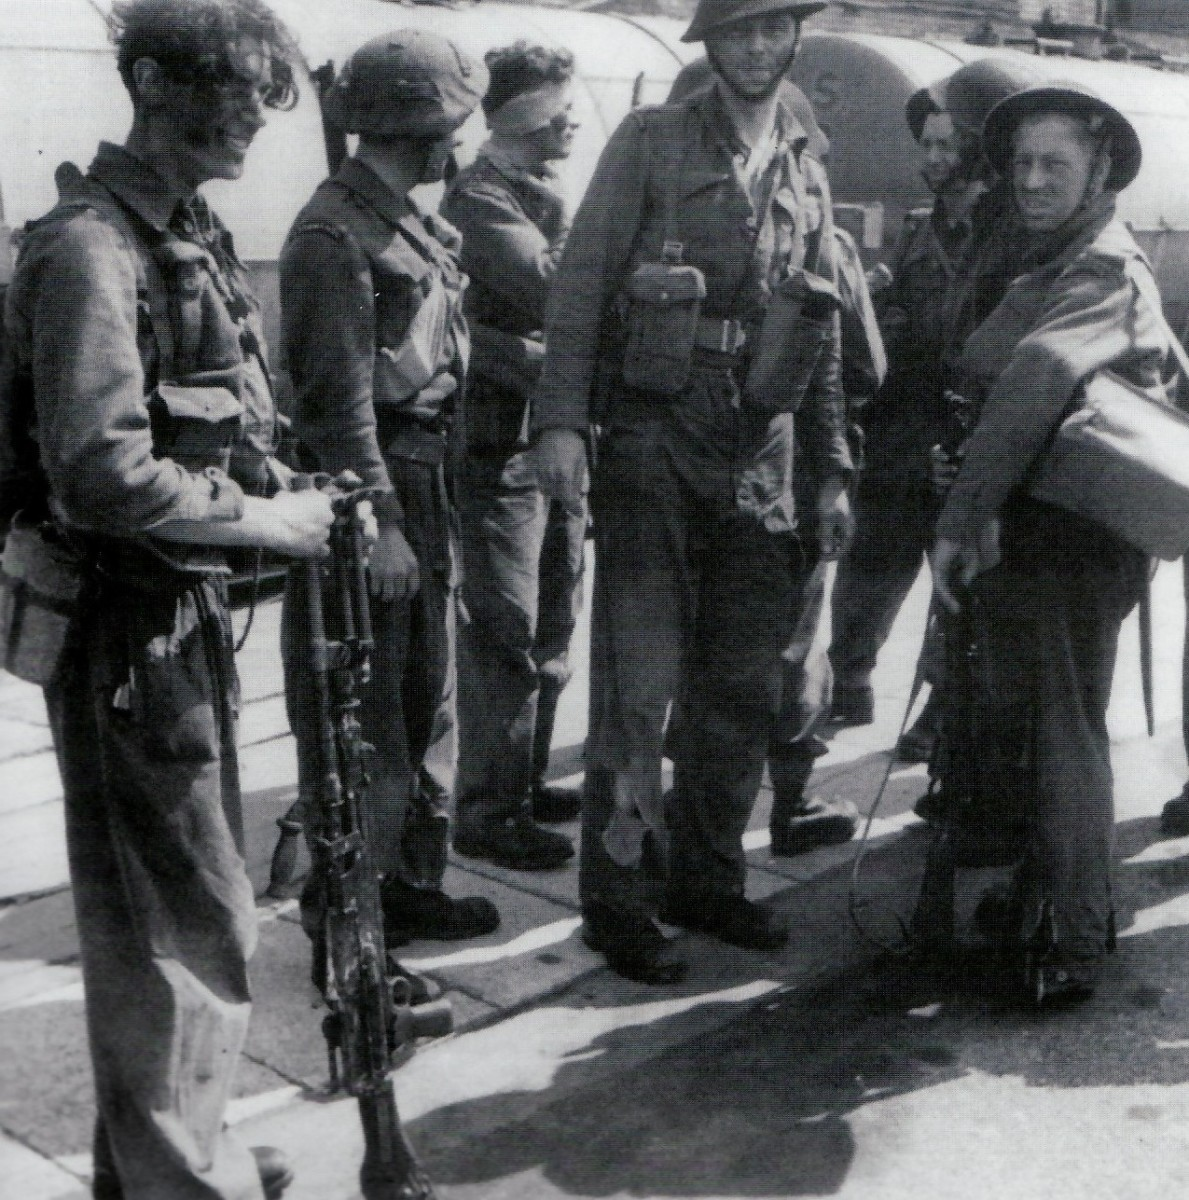 Men of No 3 Commando disembark at Newhaven after being transported back from Dieppe